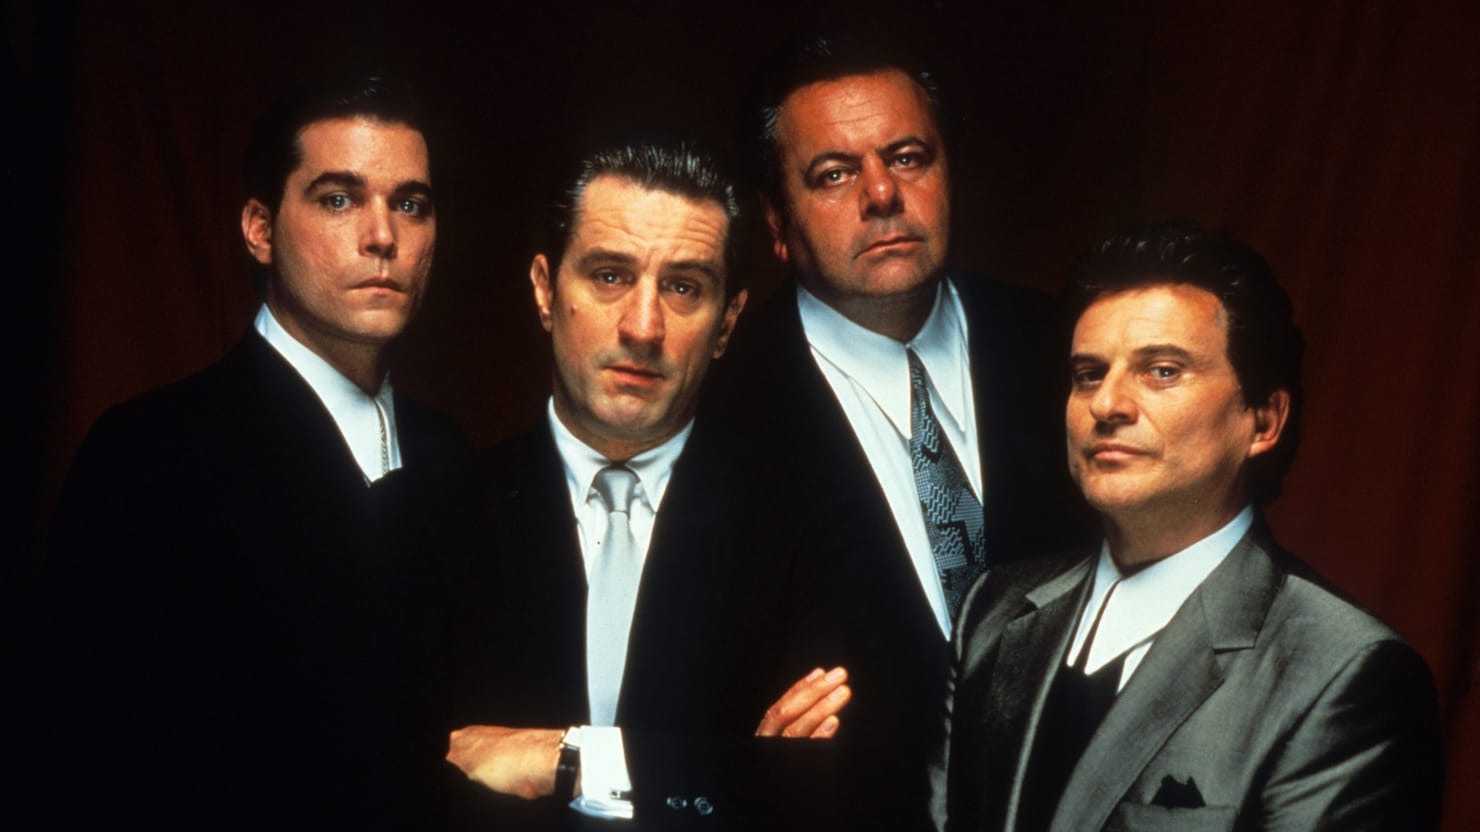 How the Mafia Classic 'Goodfellas' Directly Inspired Our Trump Book, 'Sinking in the Swamp'